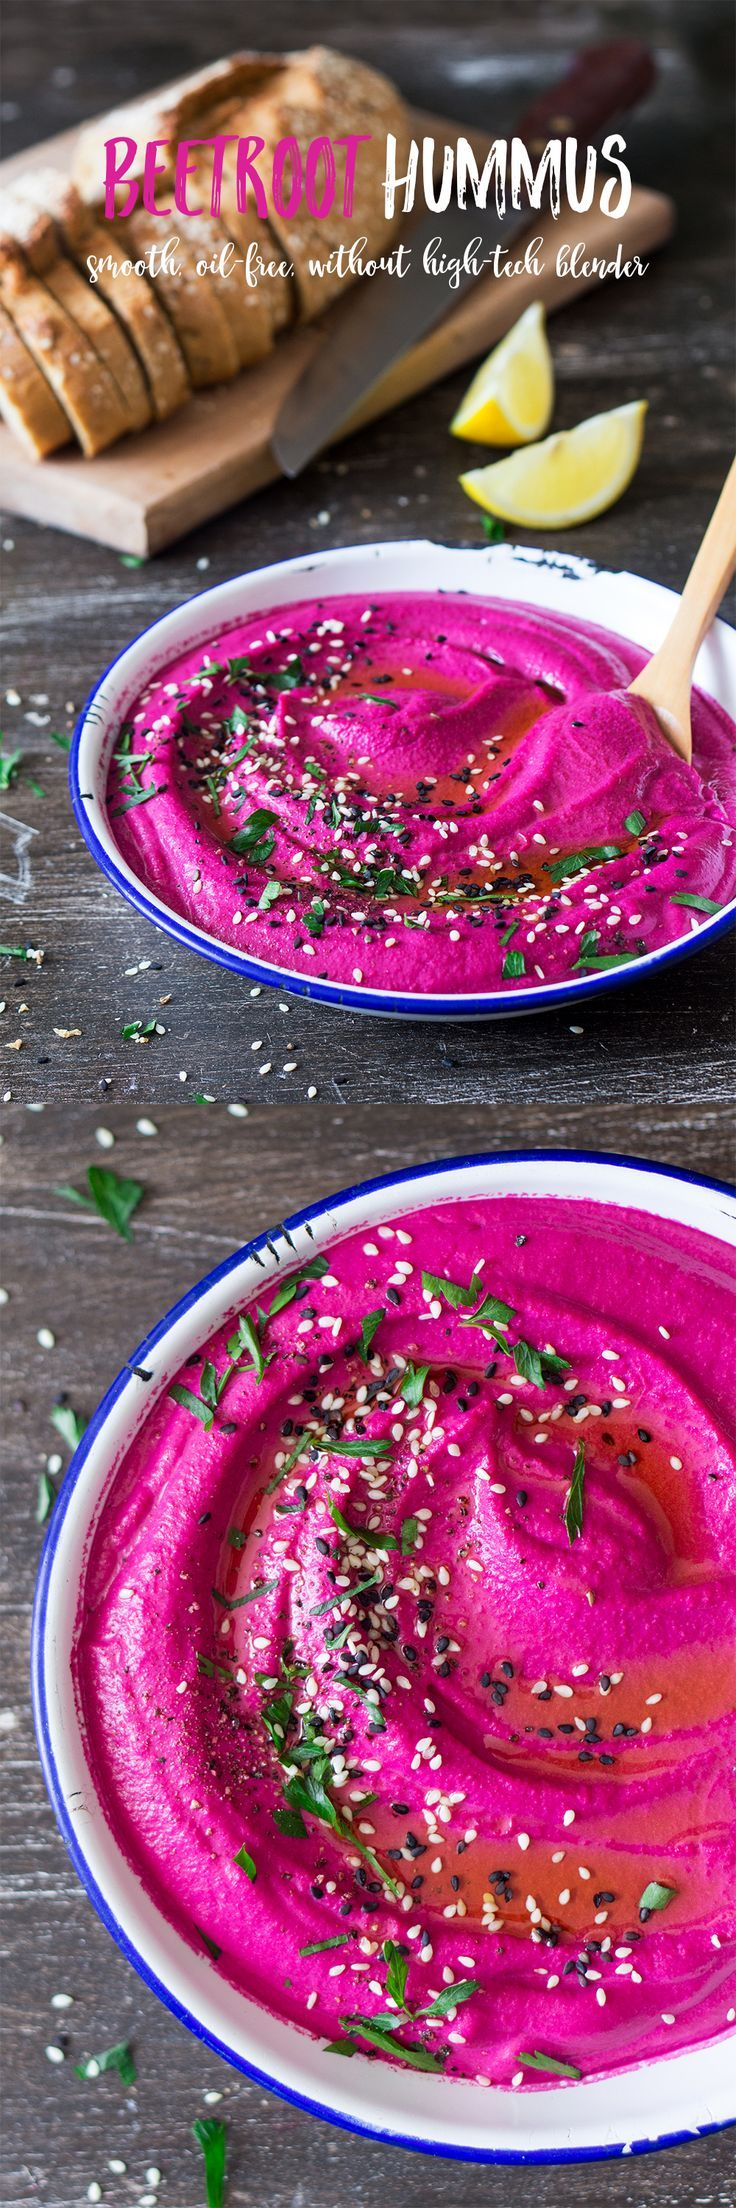 Thanks to a few tricks and a secret ingredient, this #beetroot #hummus is super #smooth despite no added oil and a very average blender. #vegan #glutenfree #vegetarian #recipe #recipes #appetizer #starter #mezze